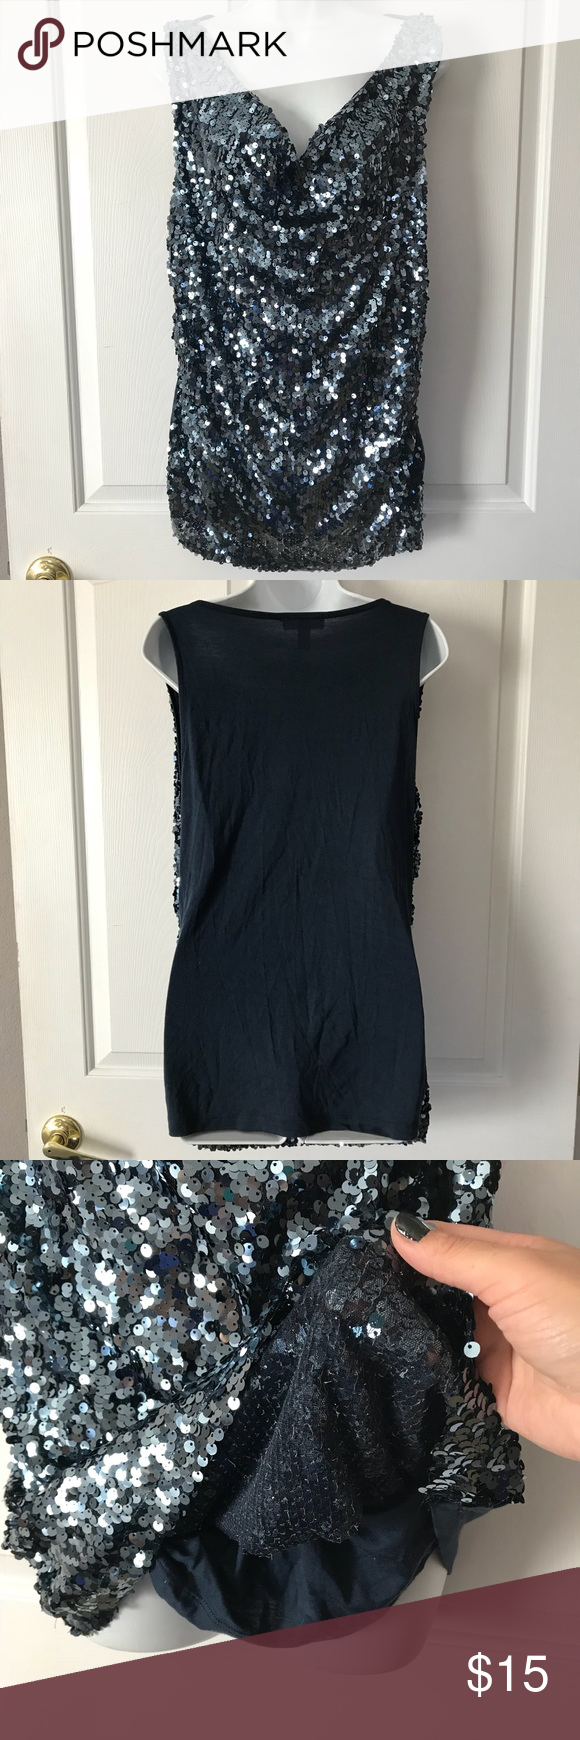 Festive New Year's XL Blue Sequin tank top Dress Barn XL blue sequined tank top. The top is stretchy, very sparkly and blingy. Great for that festive holiday party or New Year's Eve. Dress Barn Tops Tank Tops